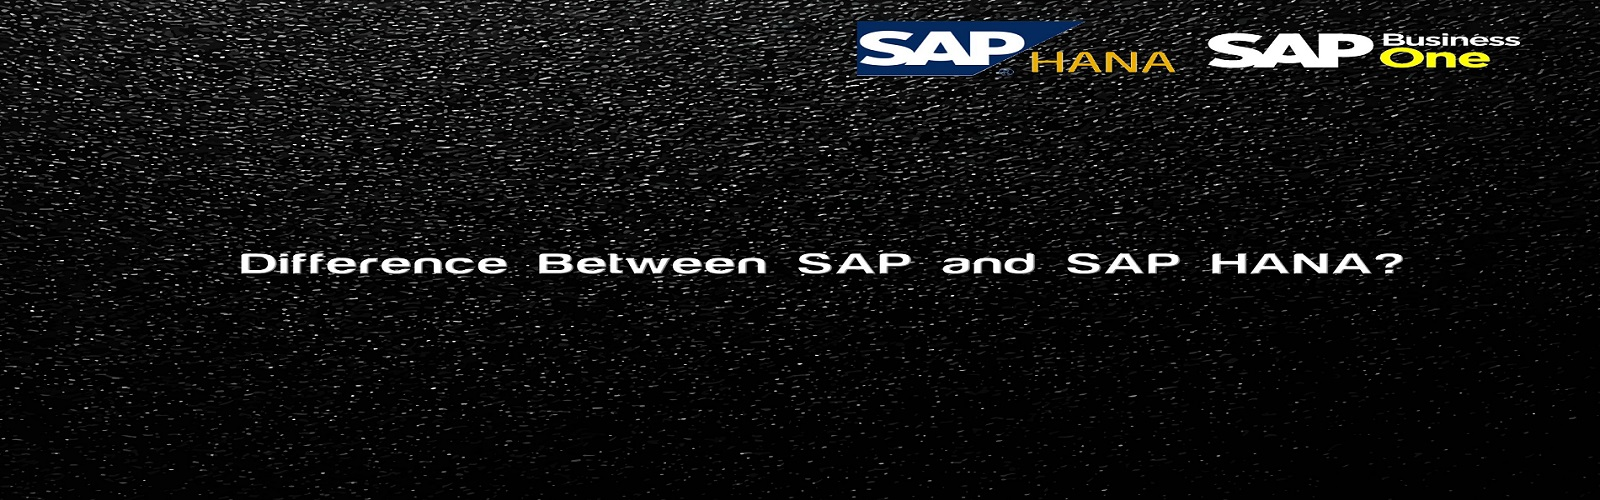 sap-and-sap-hana